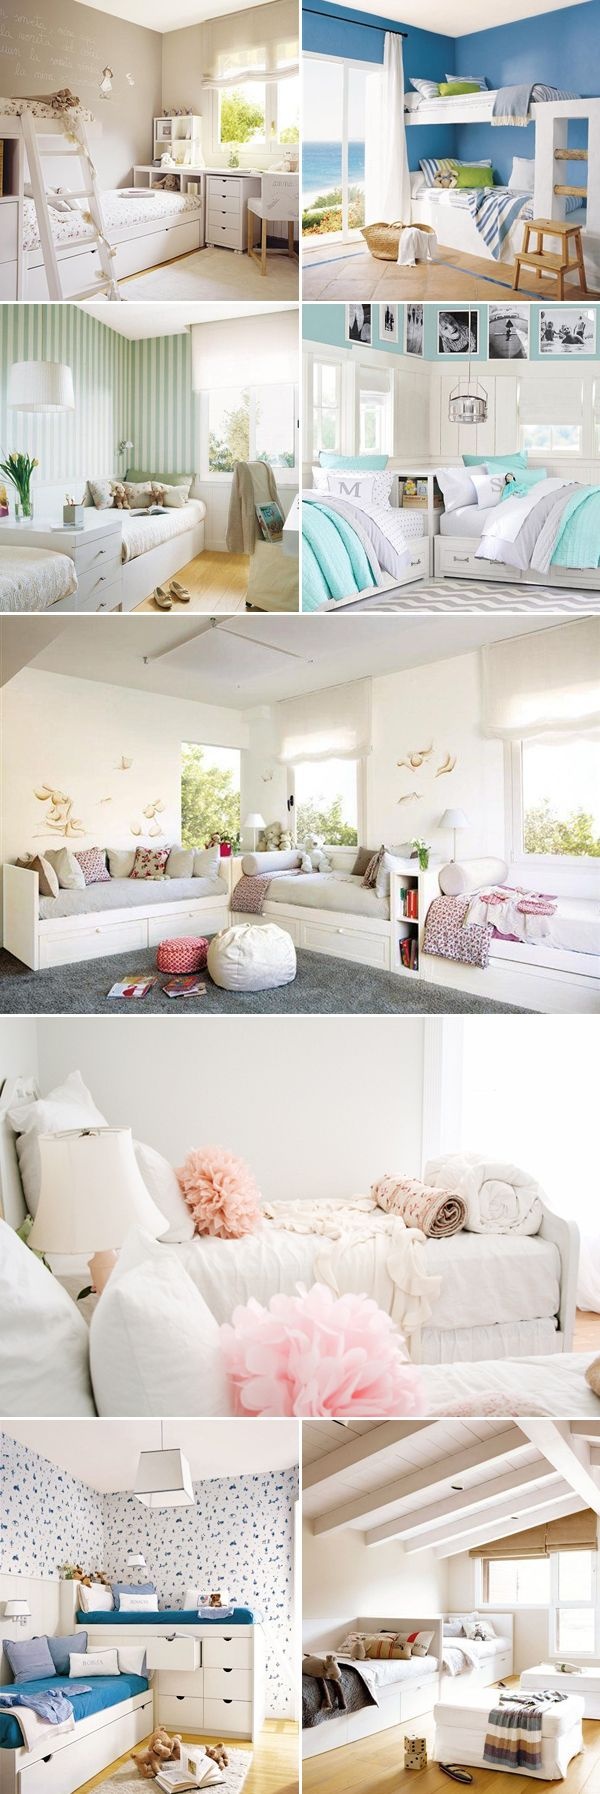 Best 29 Shared Bedrooms Ideas For Children Shared Bedrooms 640 x 480